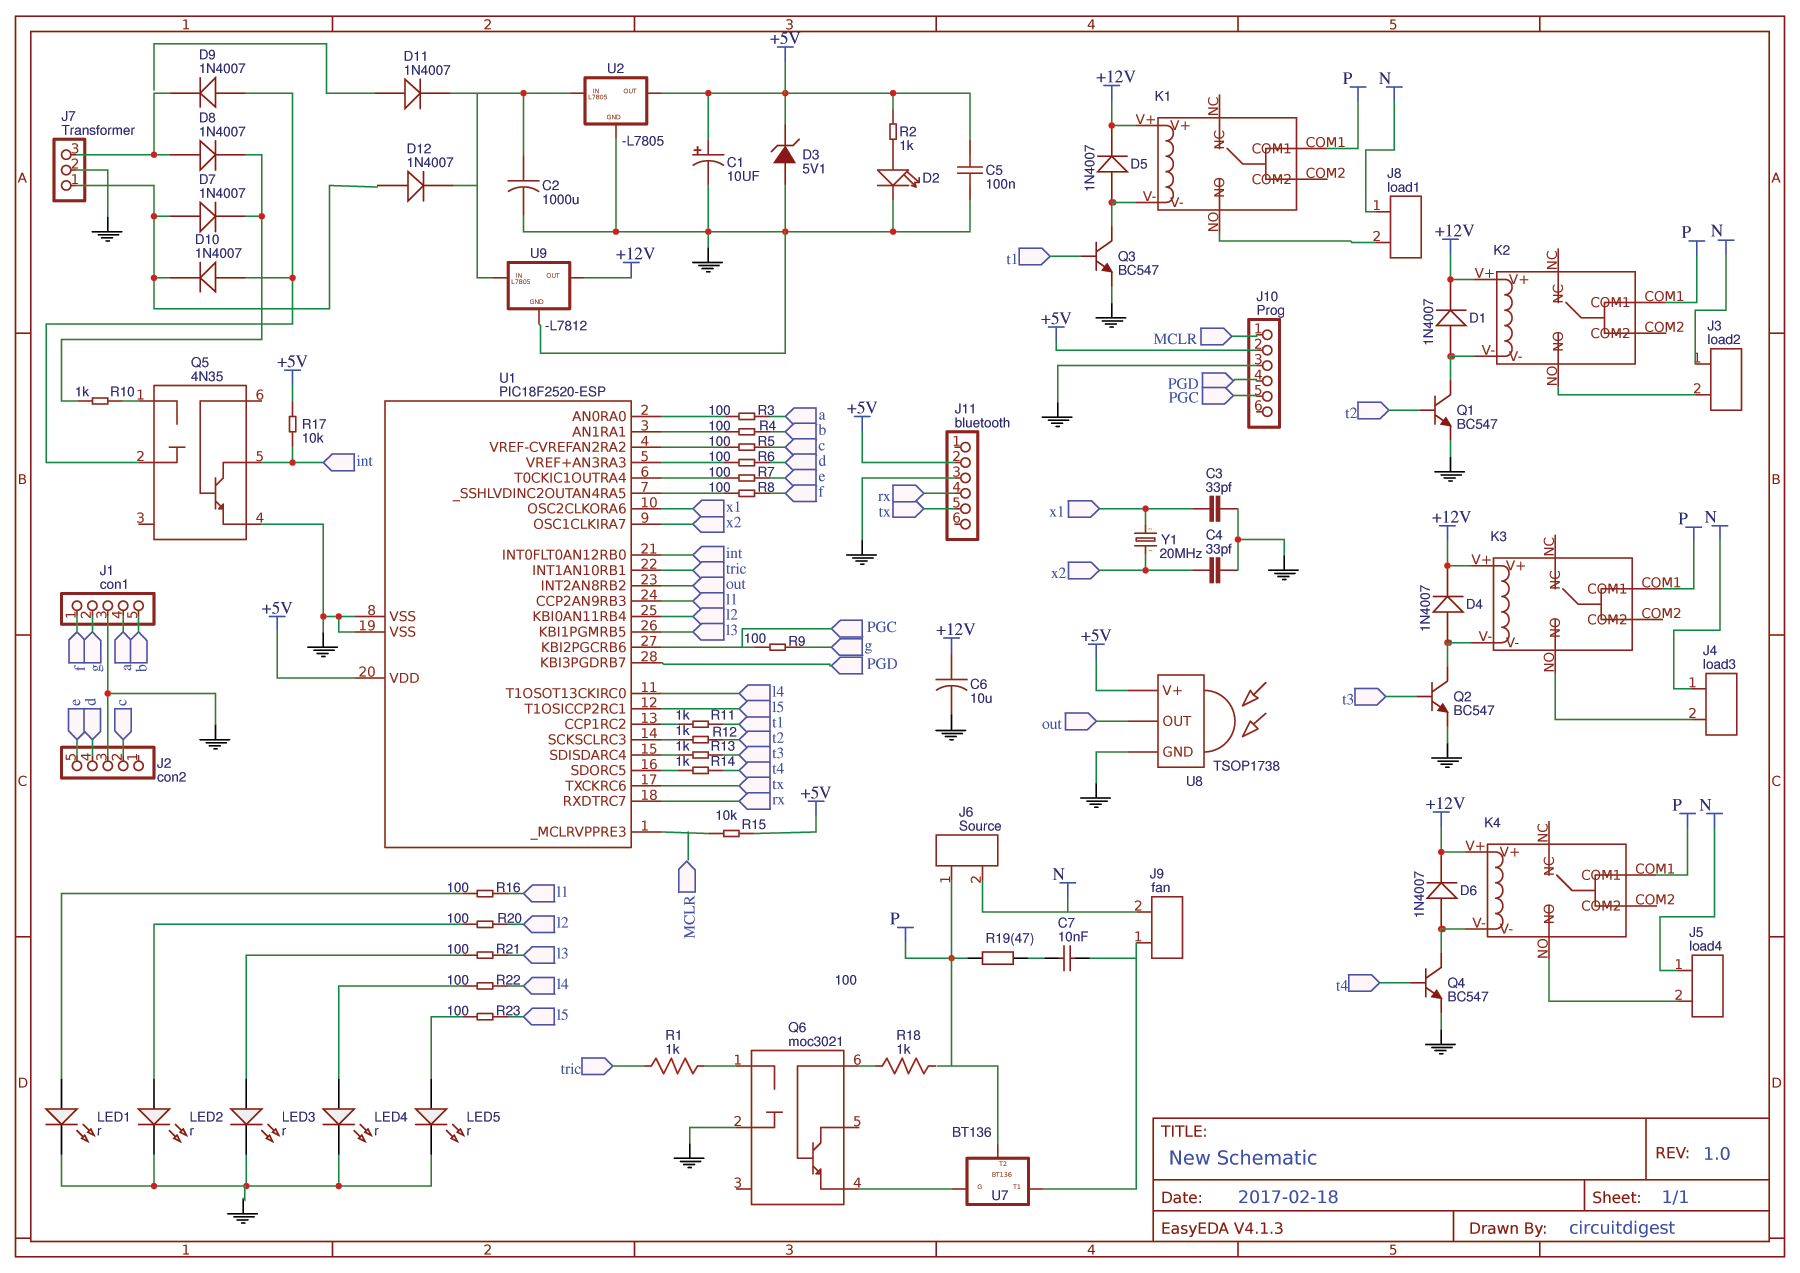 Circuit Diagram for PIC Microcontroller Based Remote